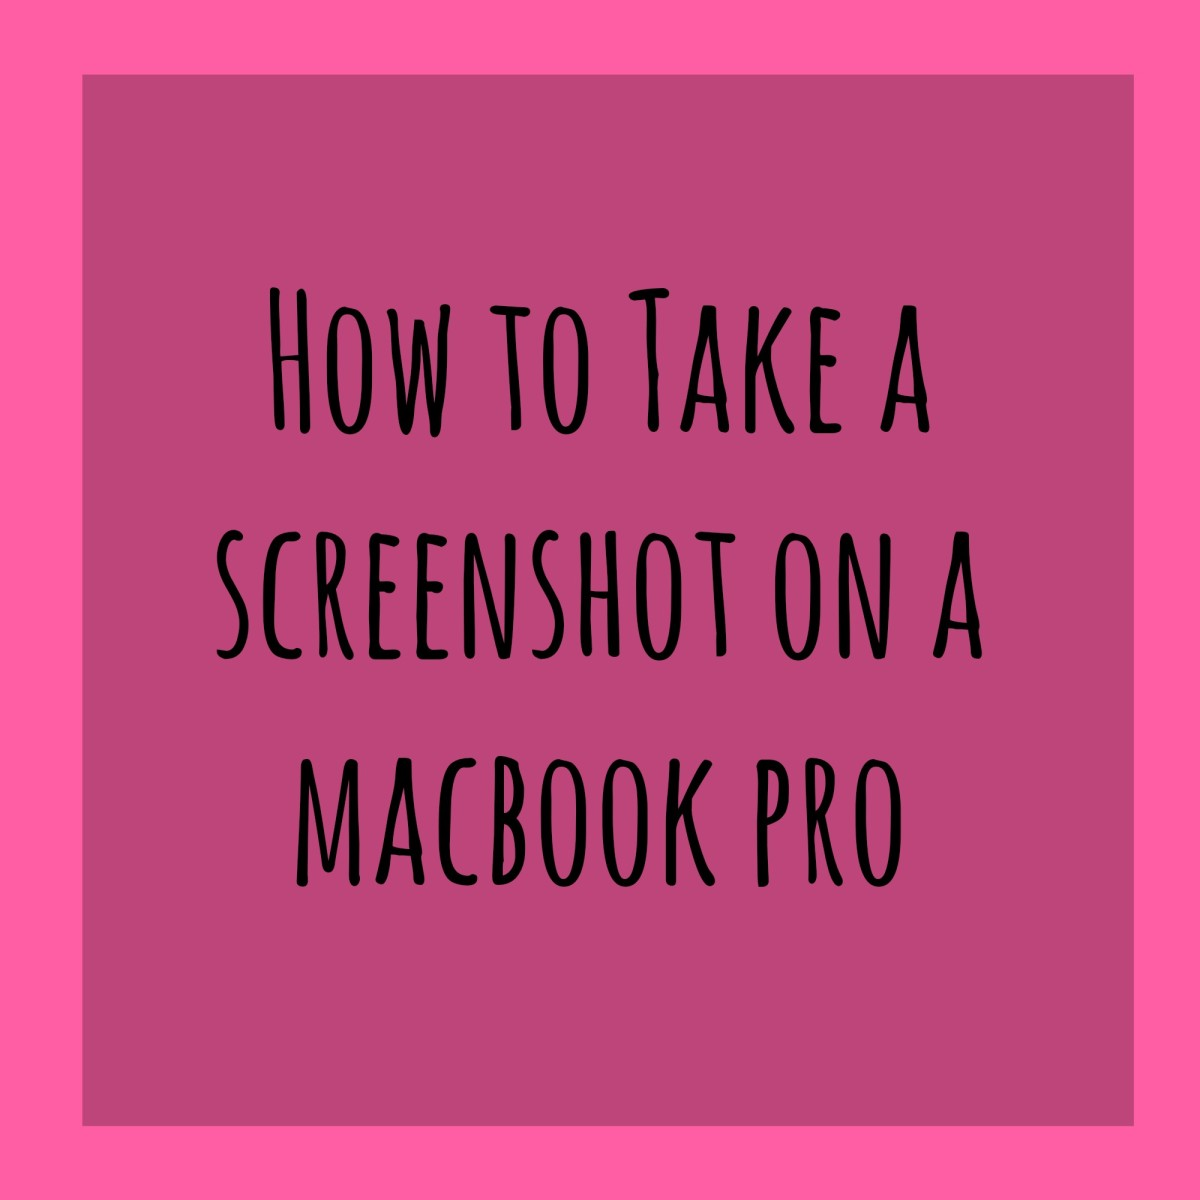 How To Take A Screenshot On A MacBook Pro